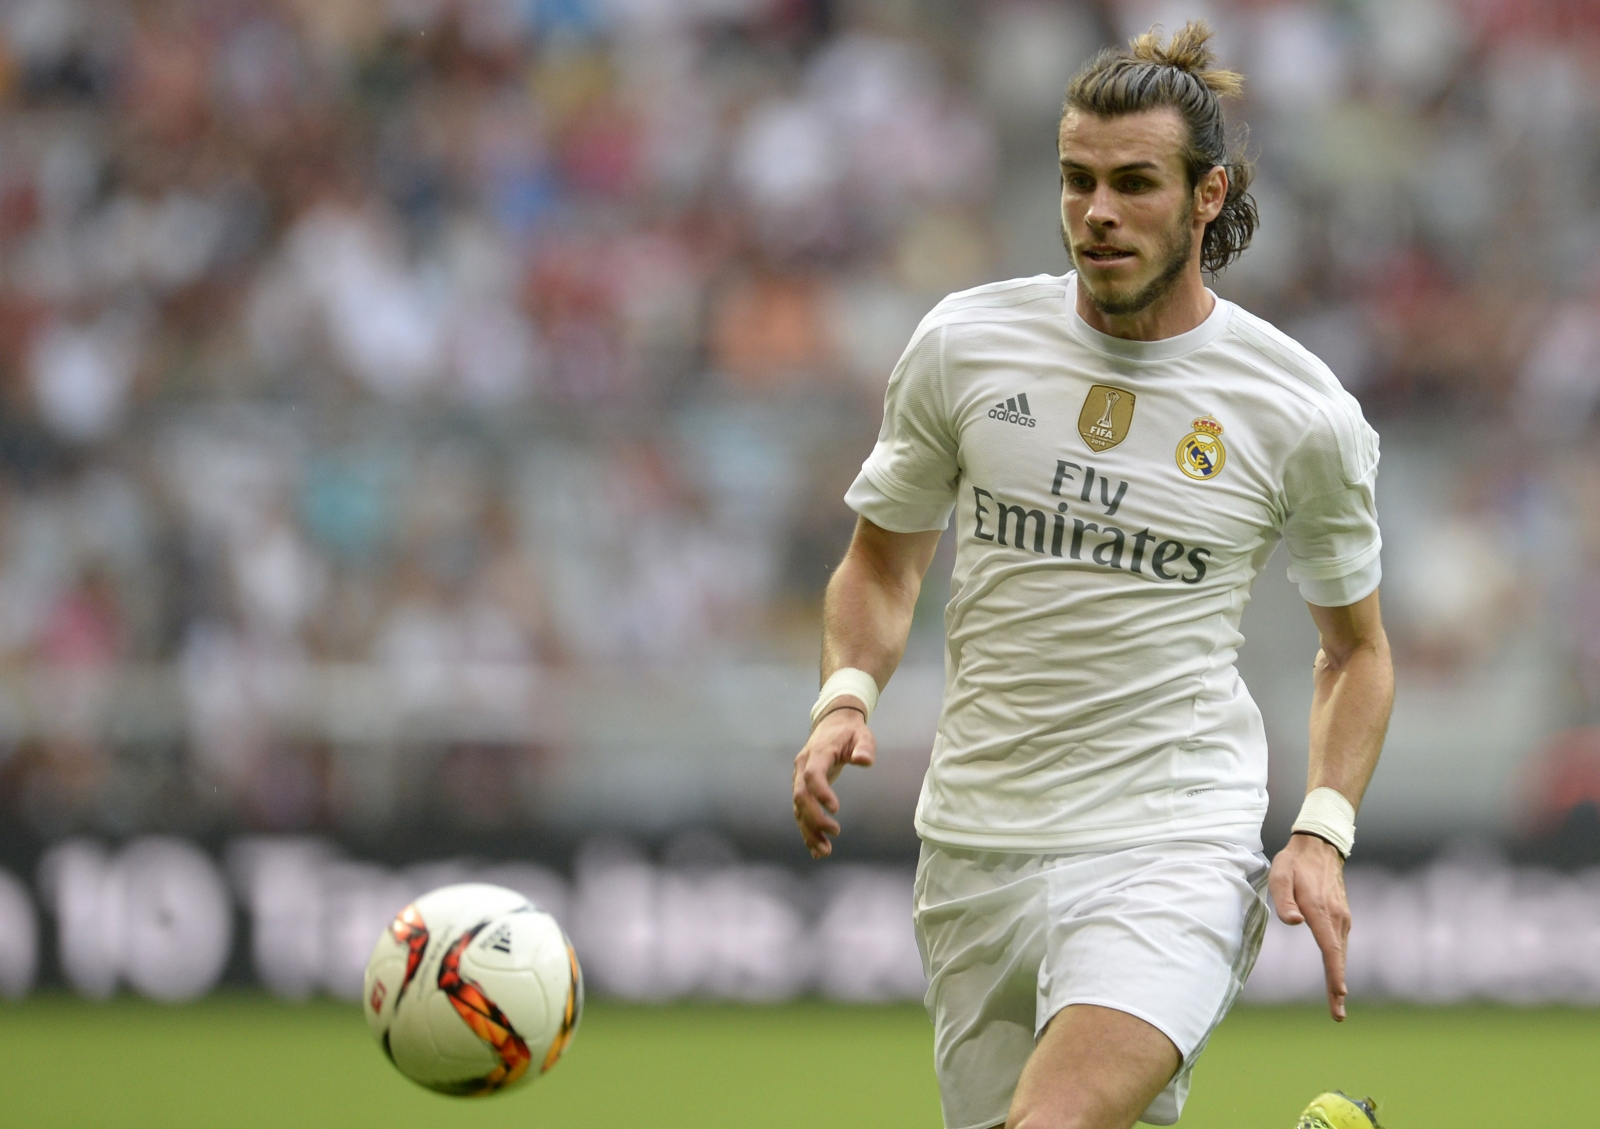 Wallpaper Manchester United Hd Gareth Bale In No Rush To Return To Premier League Amid